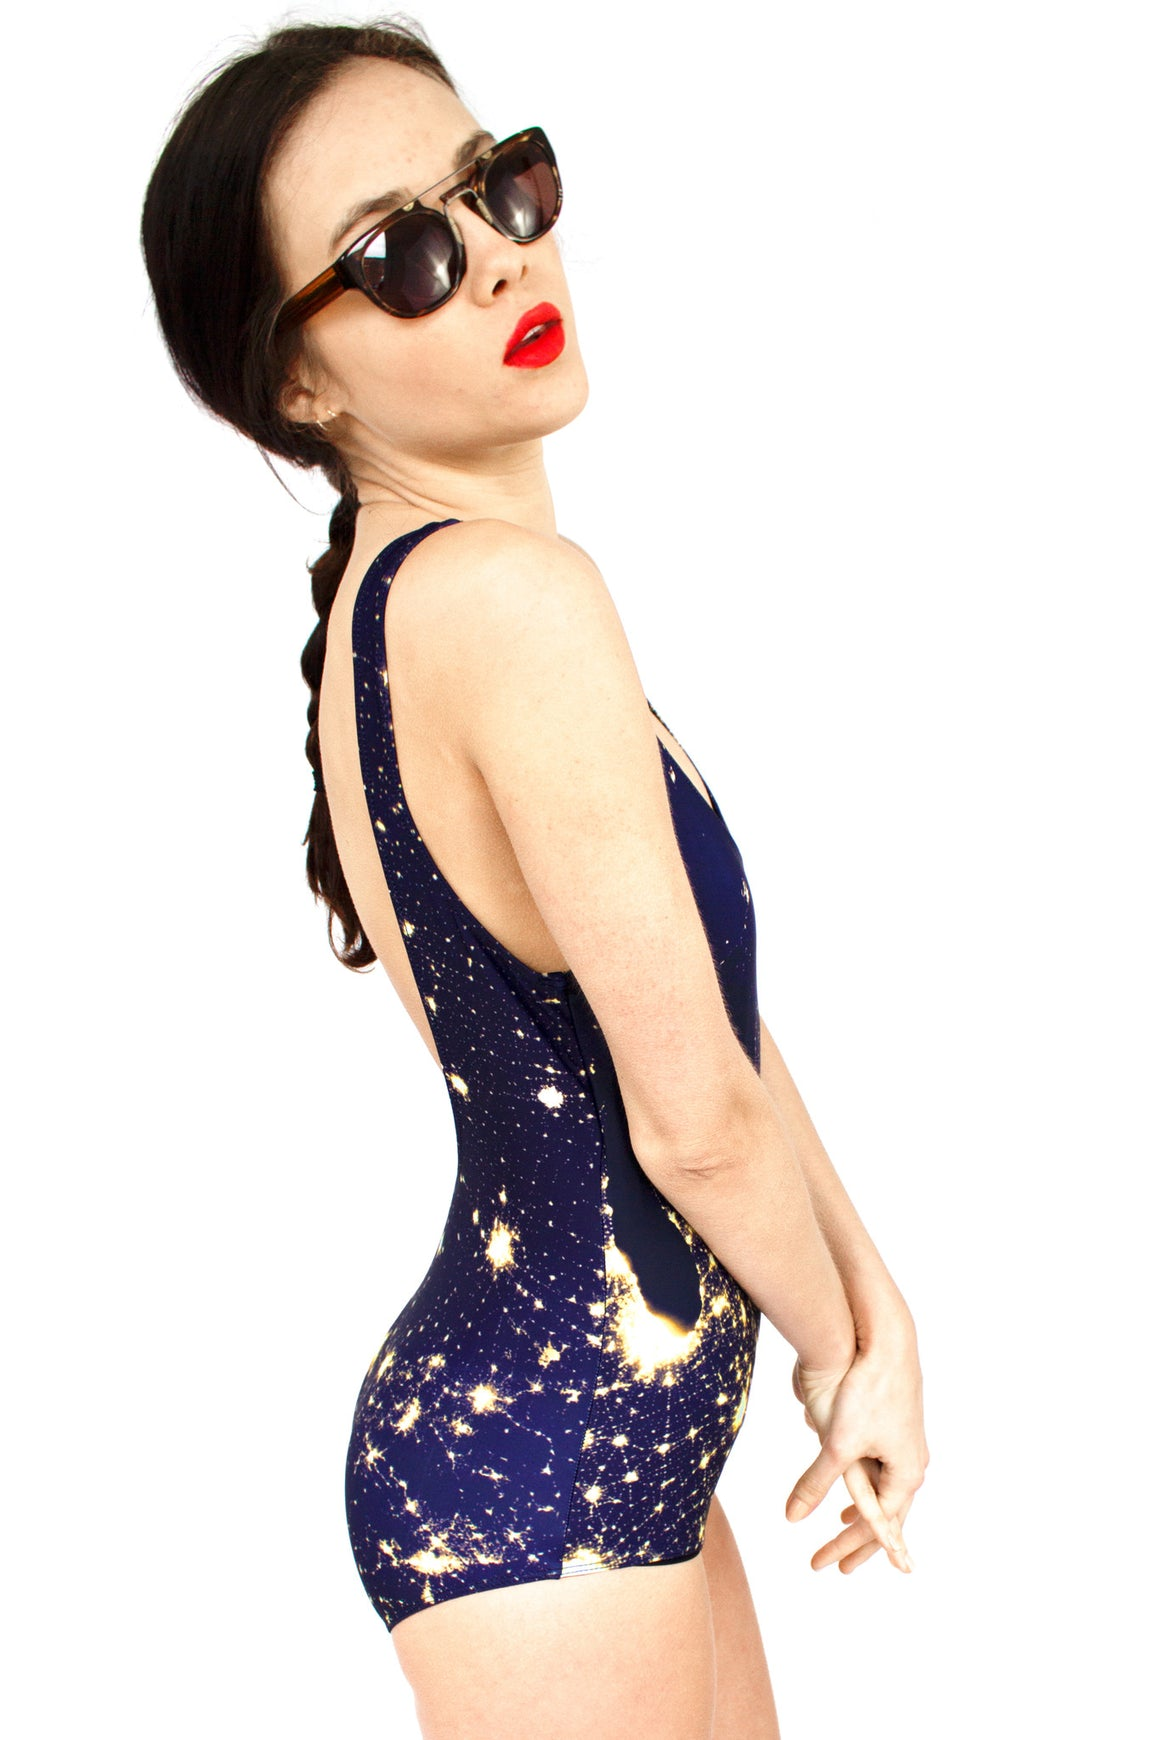 Galaxy Swimsuit, Galaxy One piece, Galaxy Clothing, Shadowplaynyc